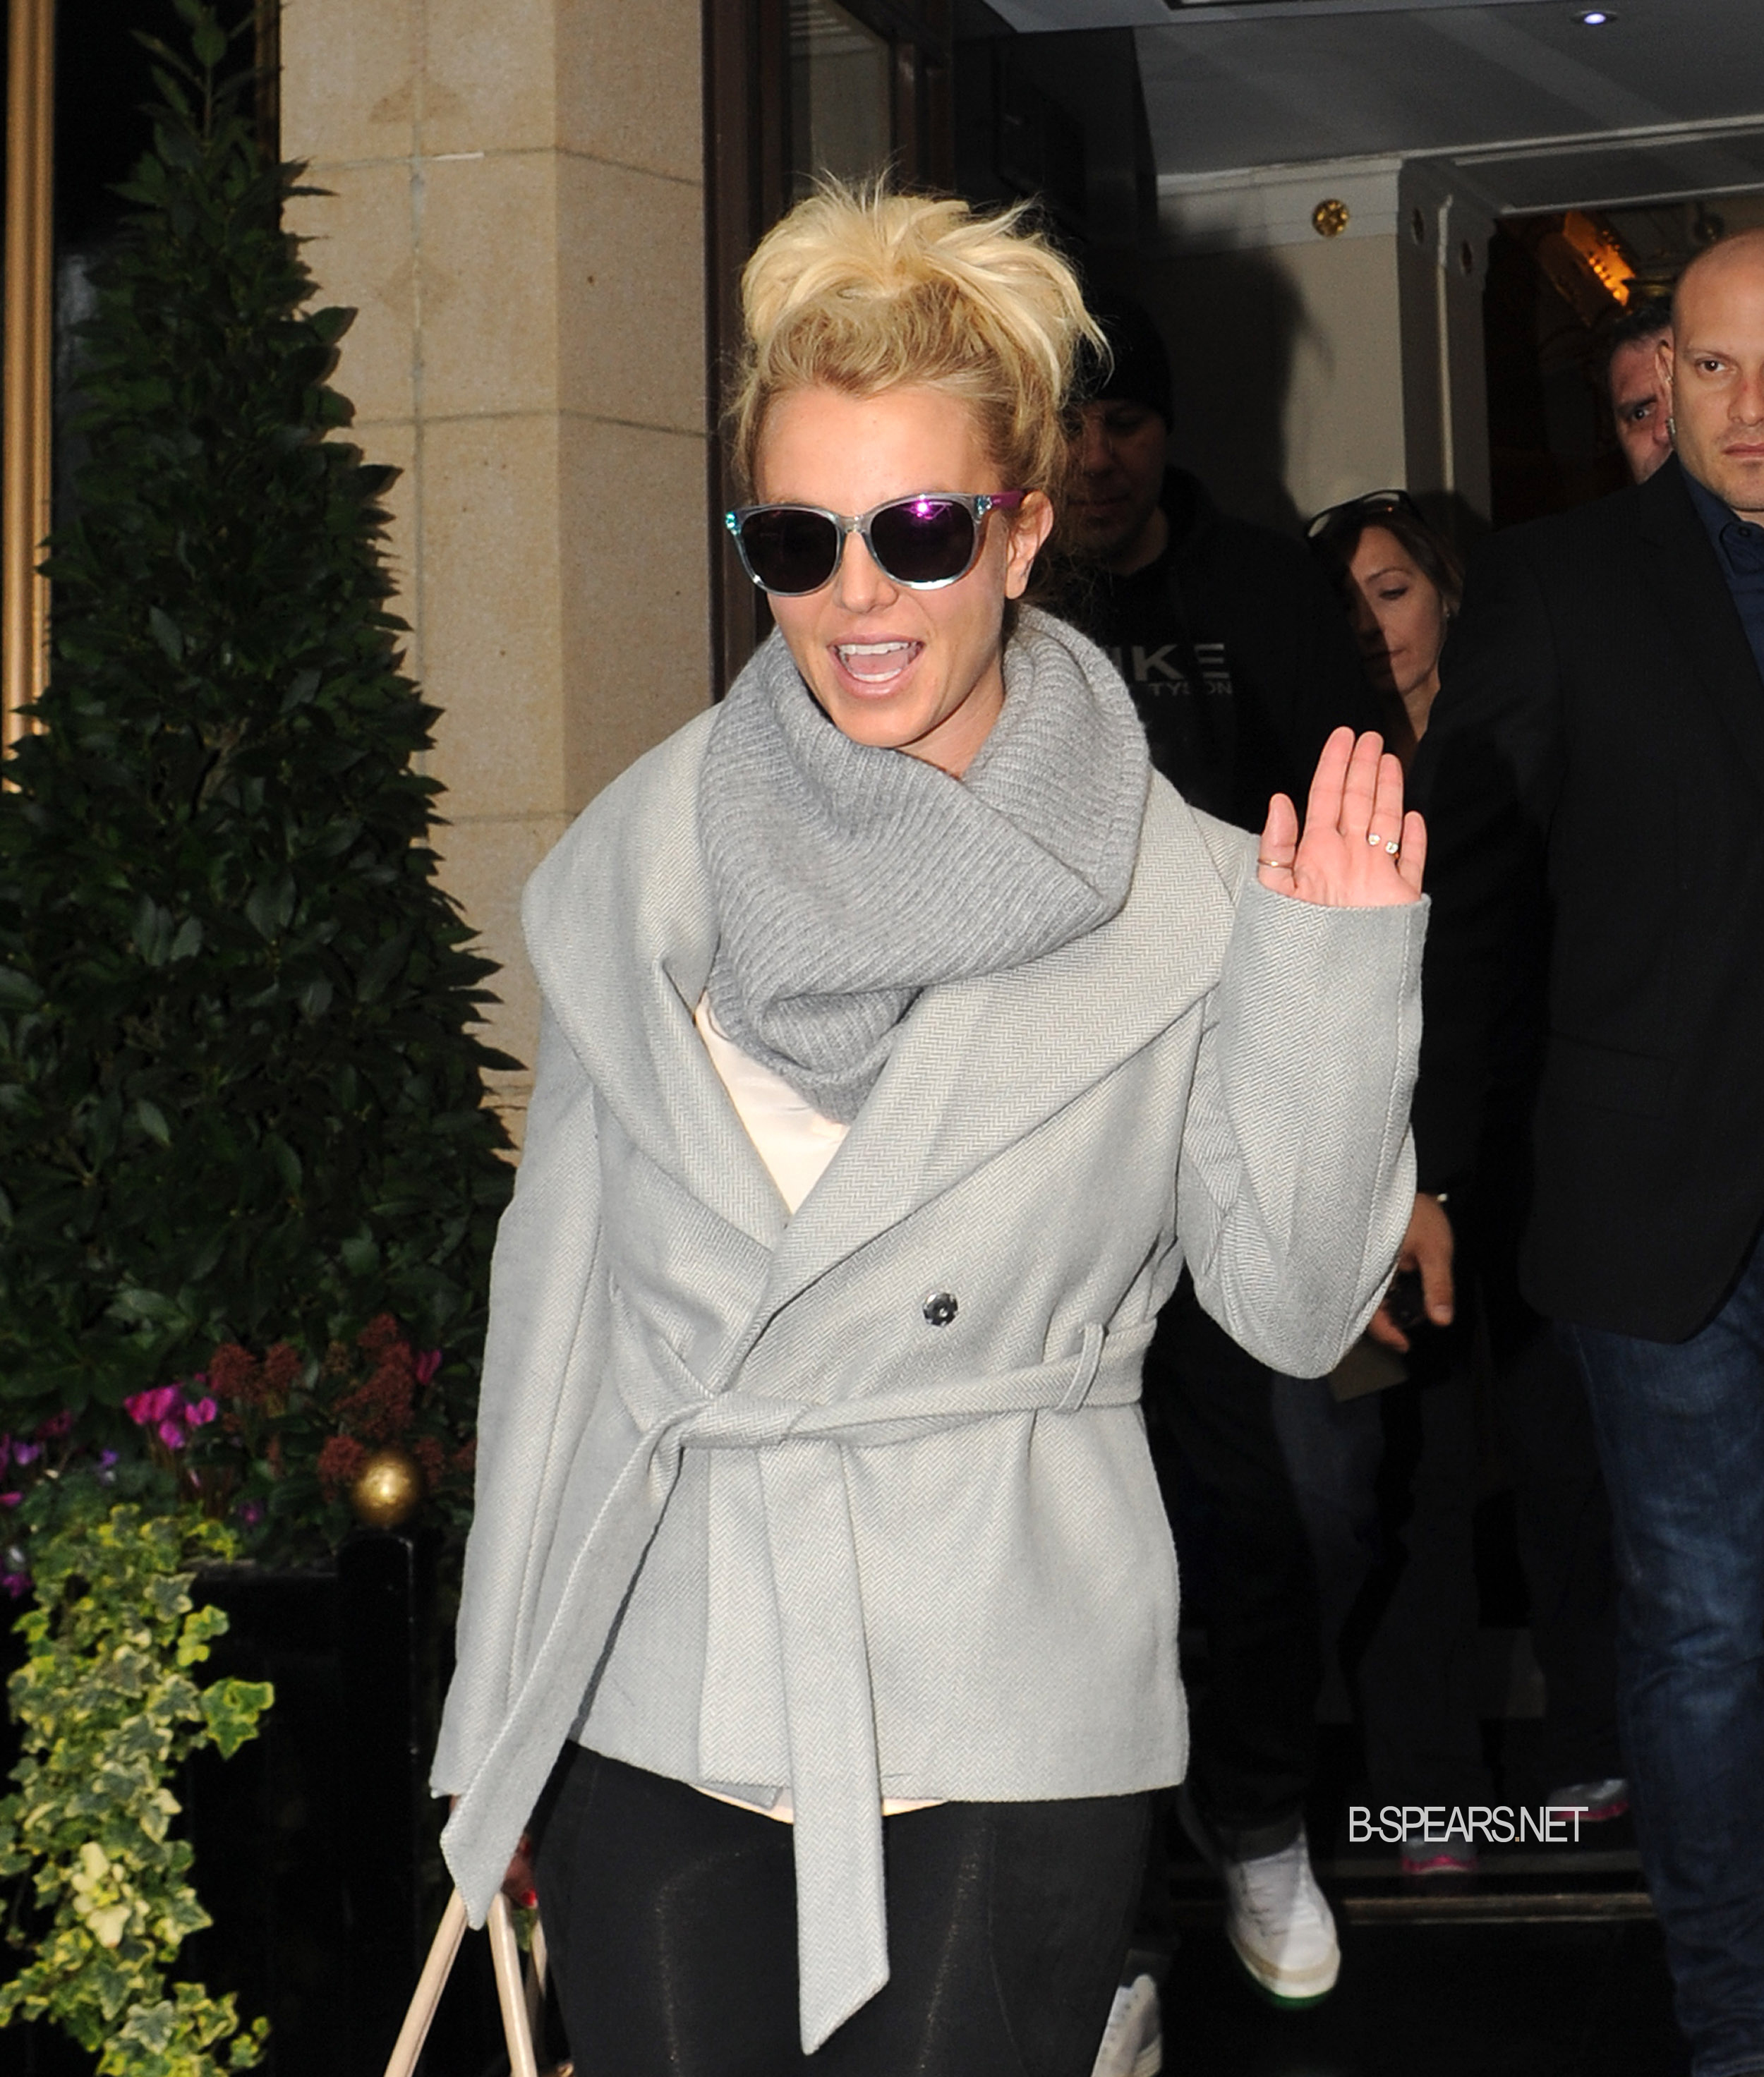 Britney Spears leaving the Dorchster hotel in London